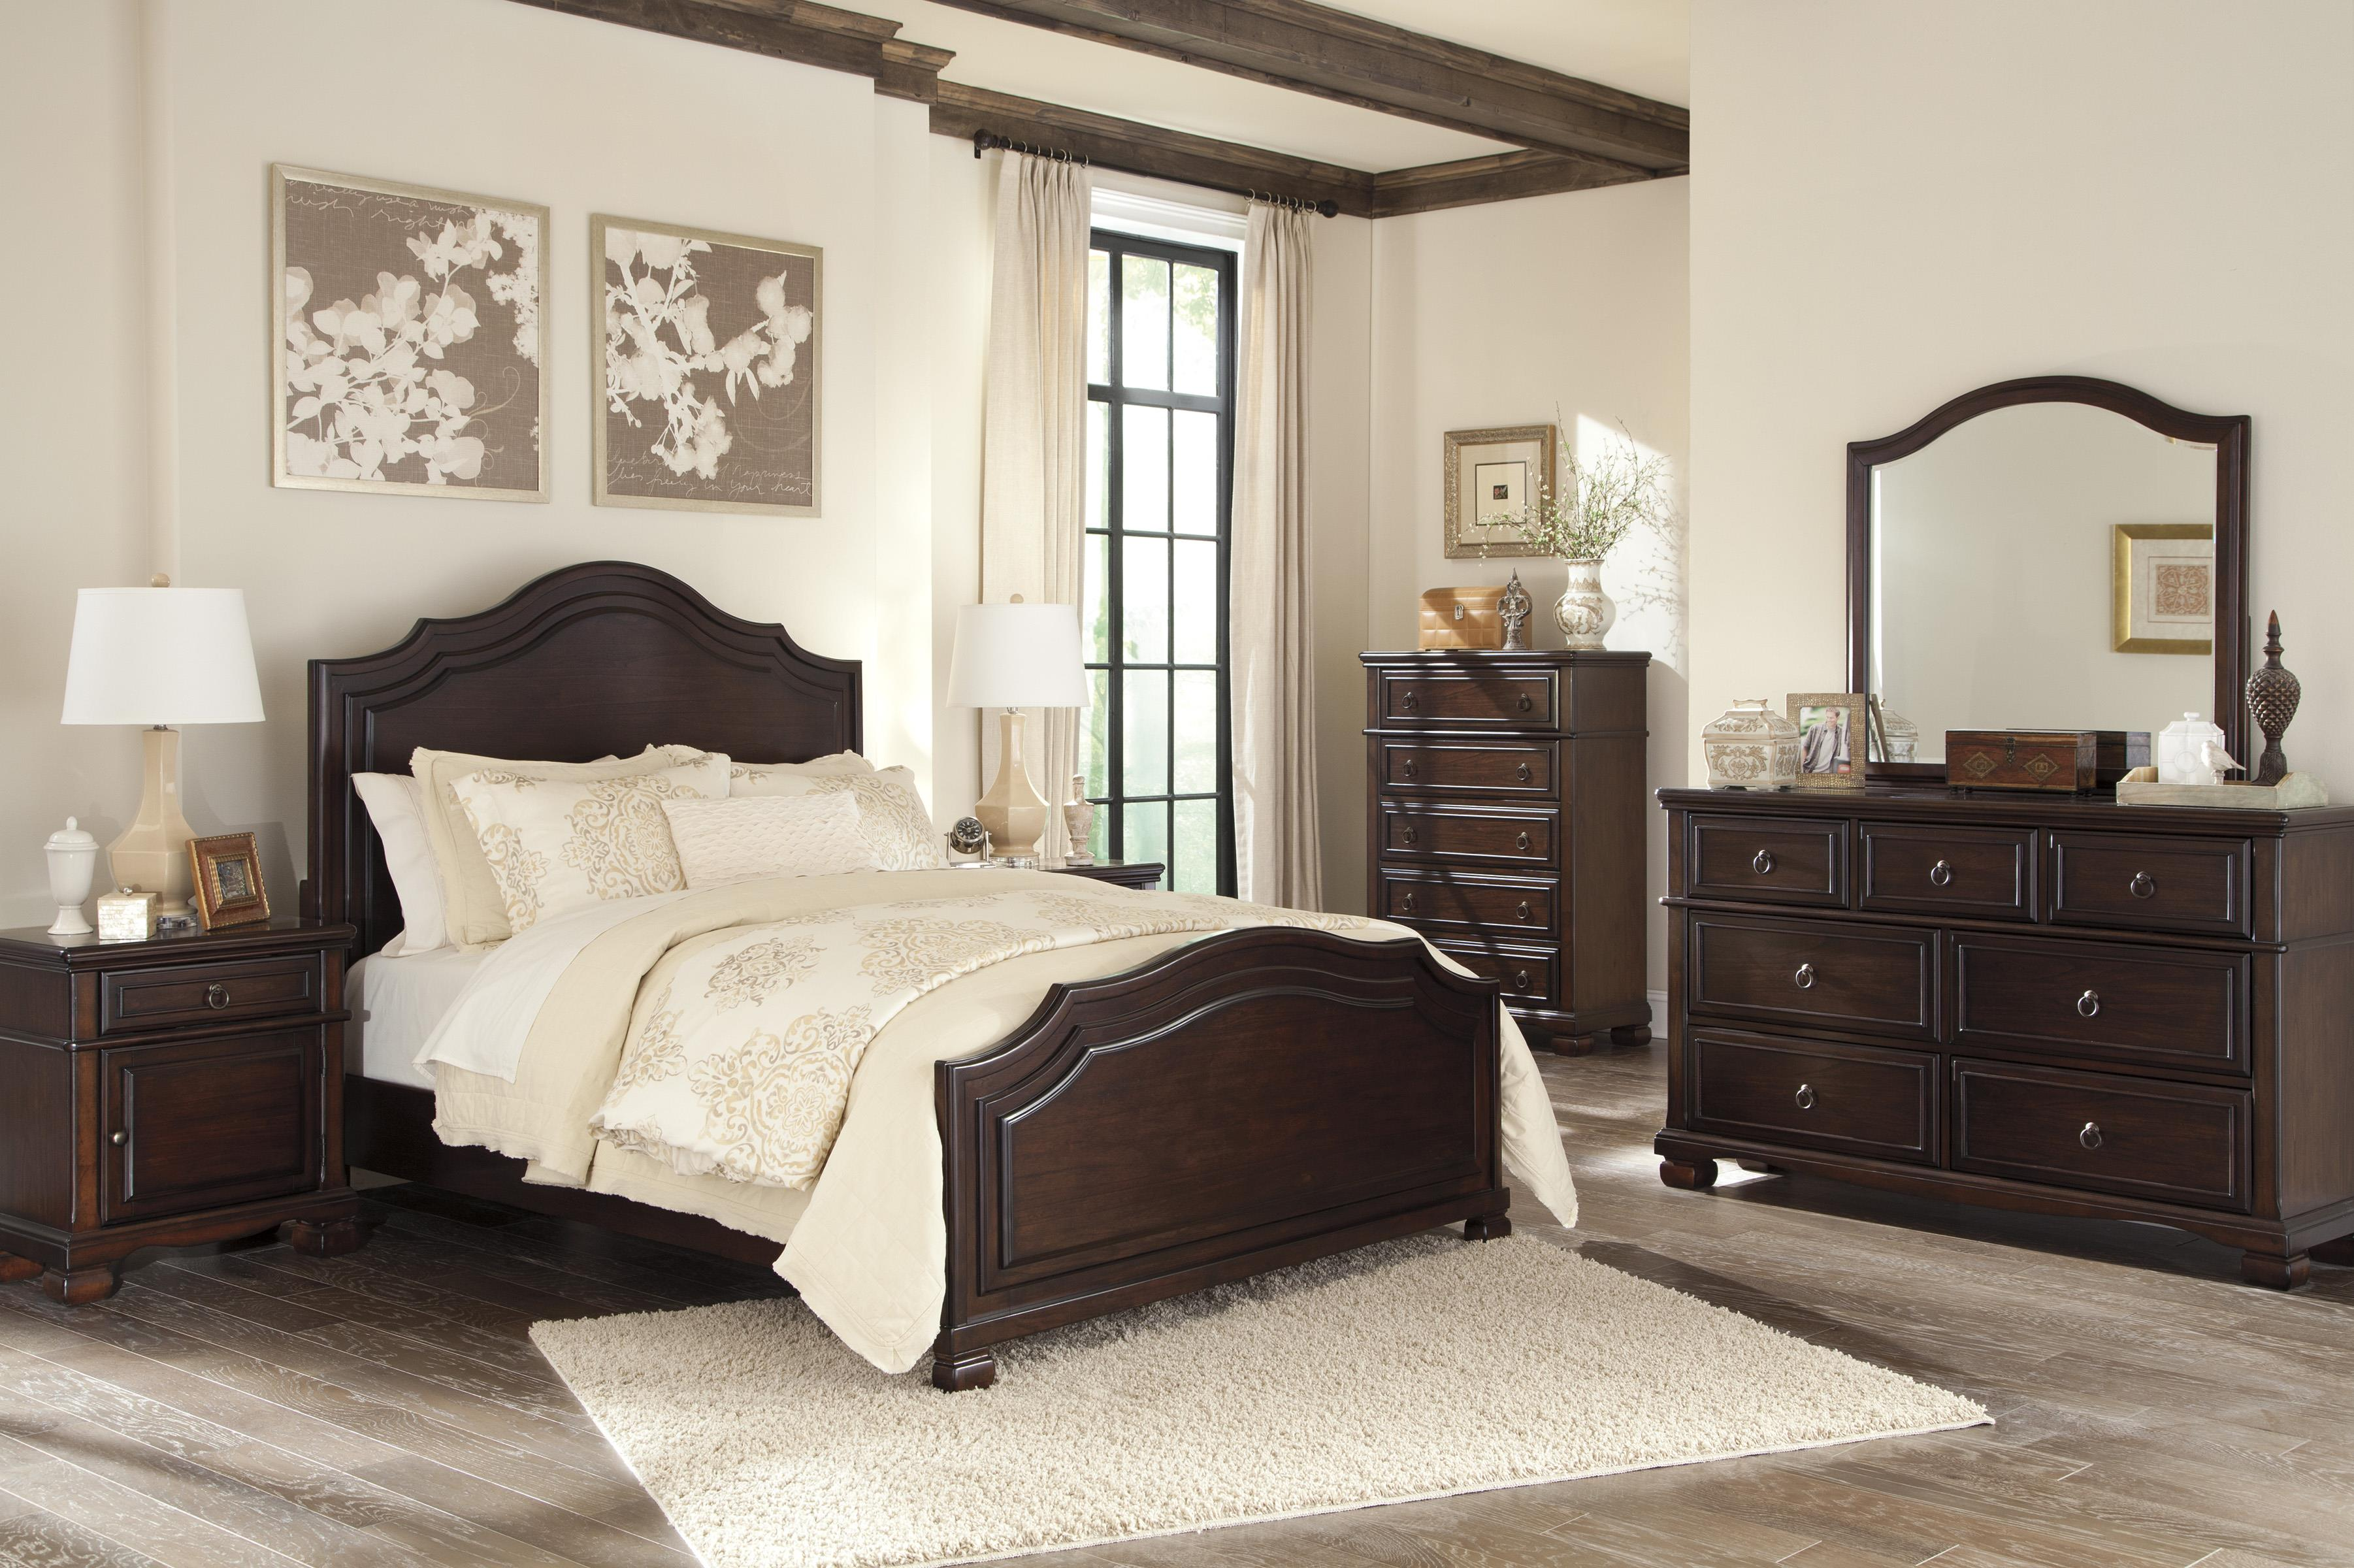 Signature Design by Ashley Brulind Queen Bedroom Group - Item Number: B554 Q Bedroom Group 2